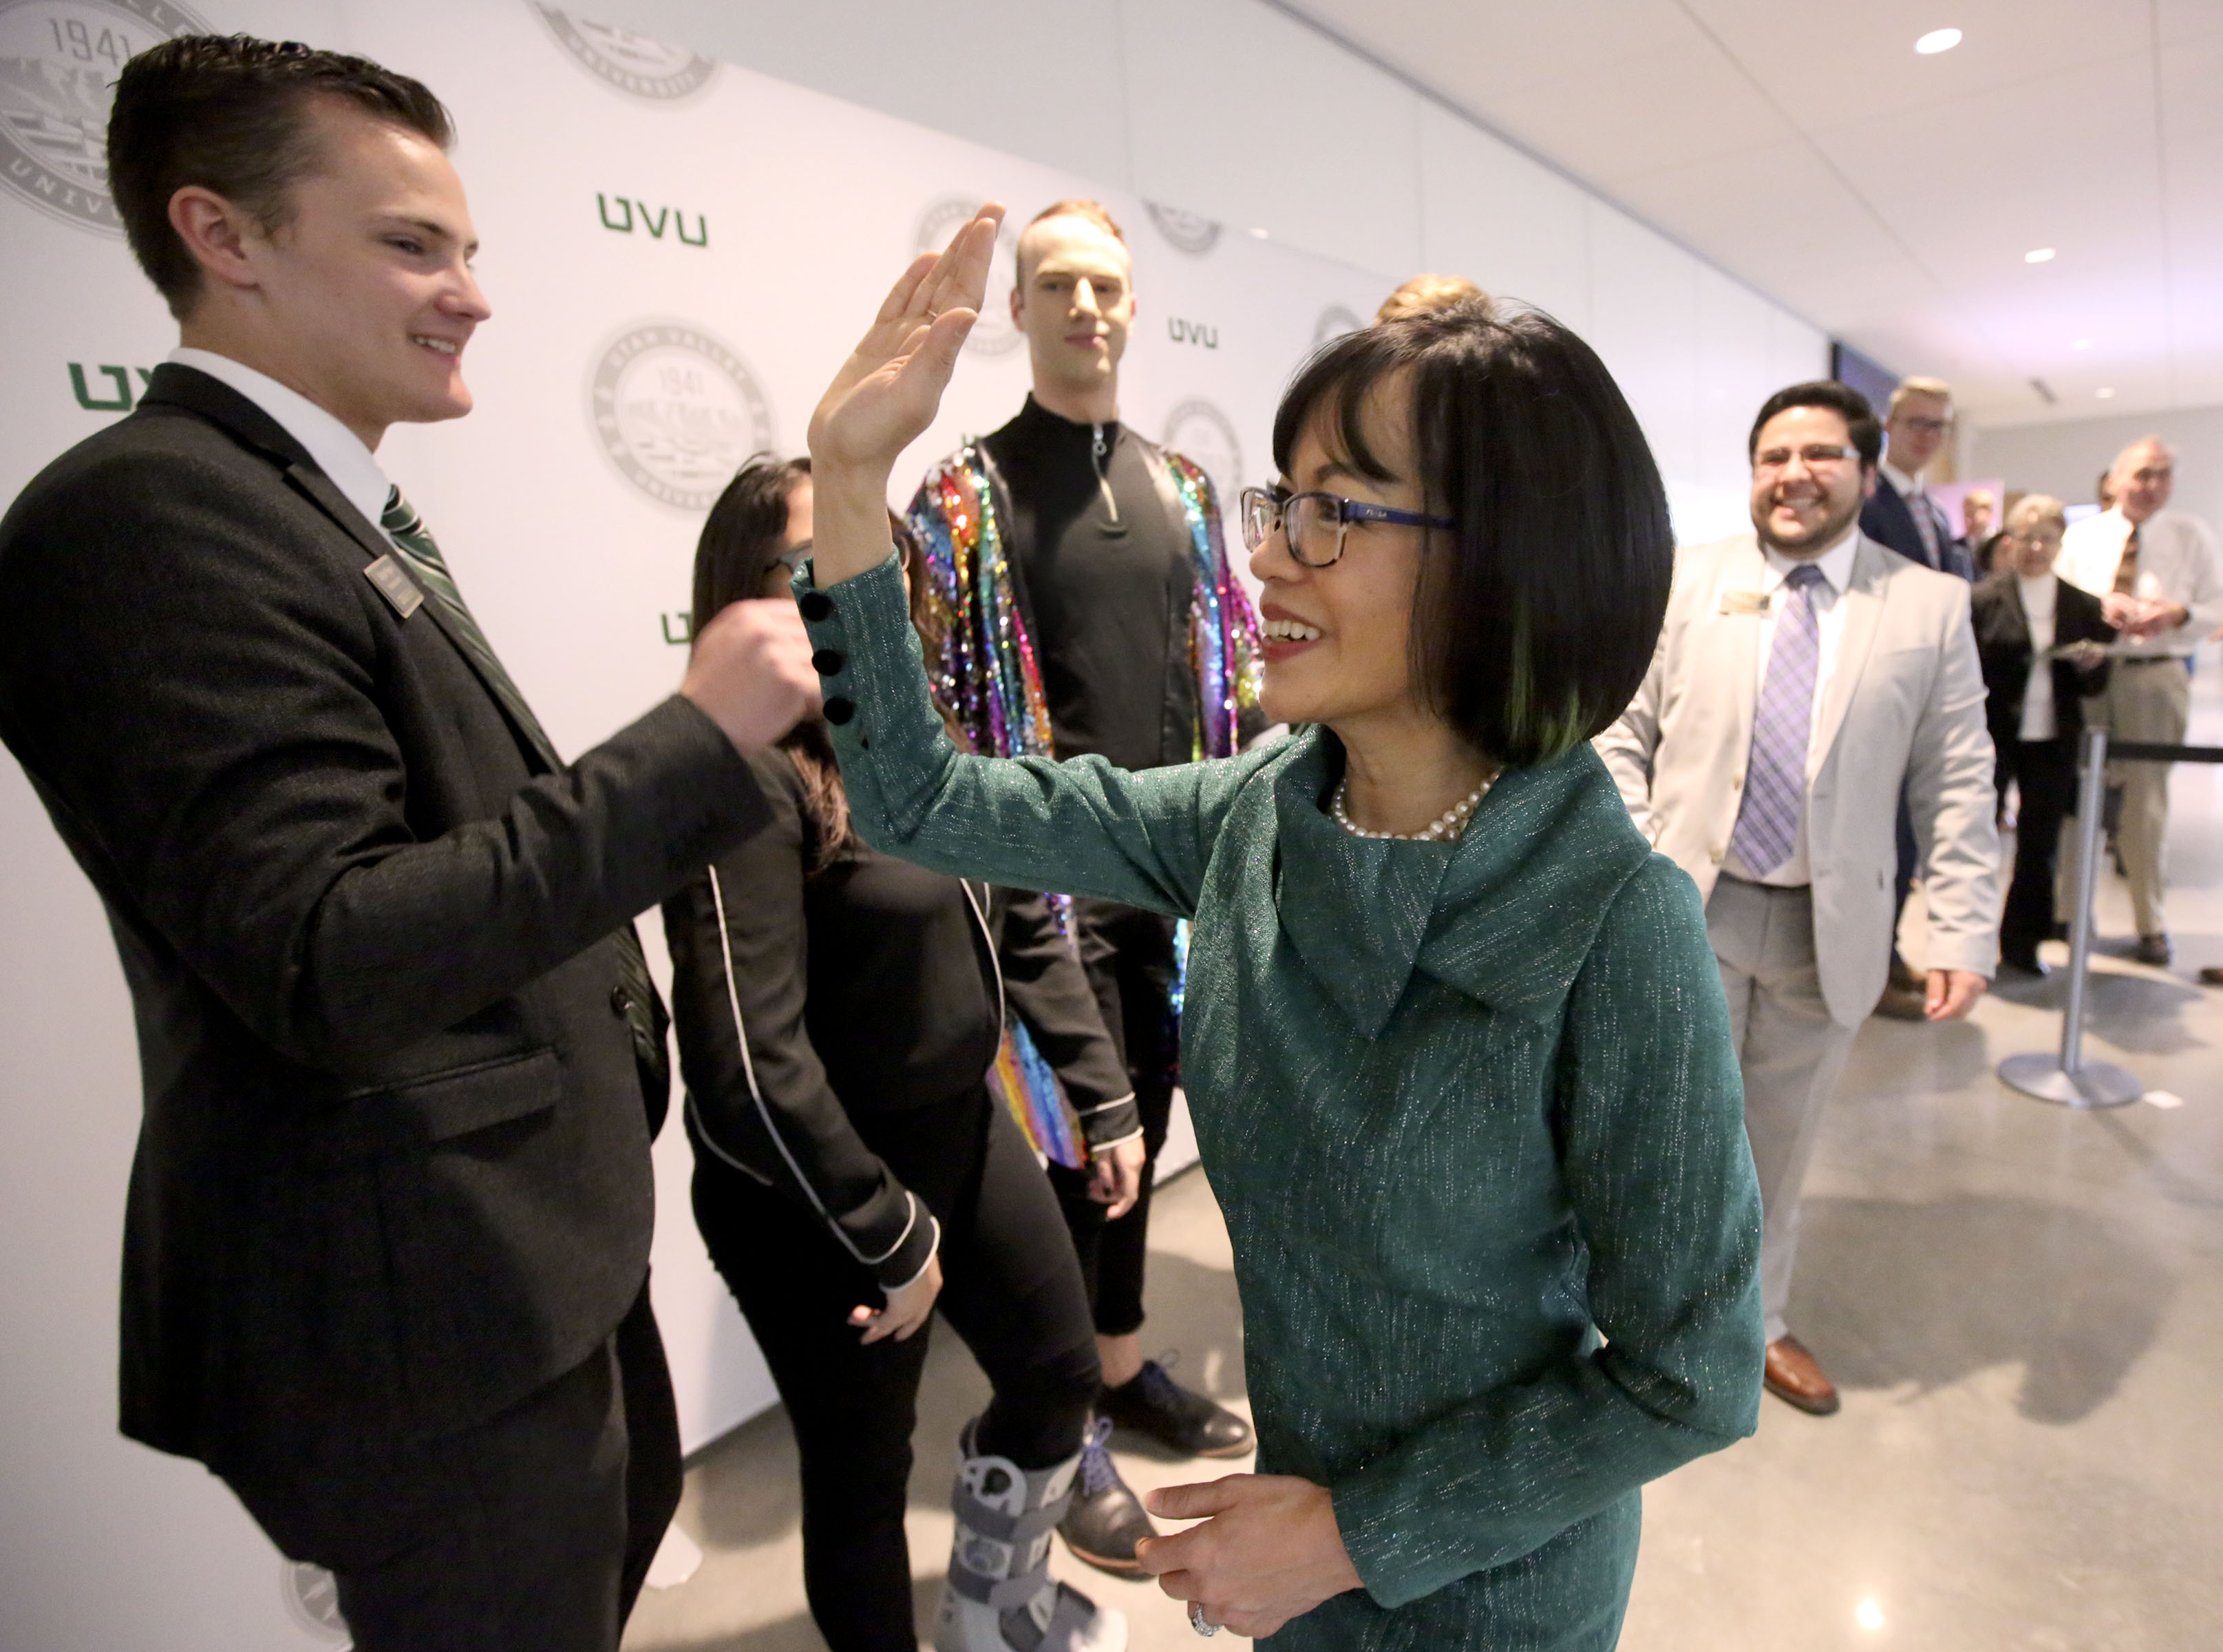 Astrid S. Tuminez, Utah Valley University's seventh president, waits for a high-five after her inauguration ceremony at the UVU Noorda Center for the Performing Arts in Orem, Utah, on March 27, 2019.